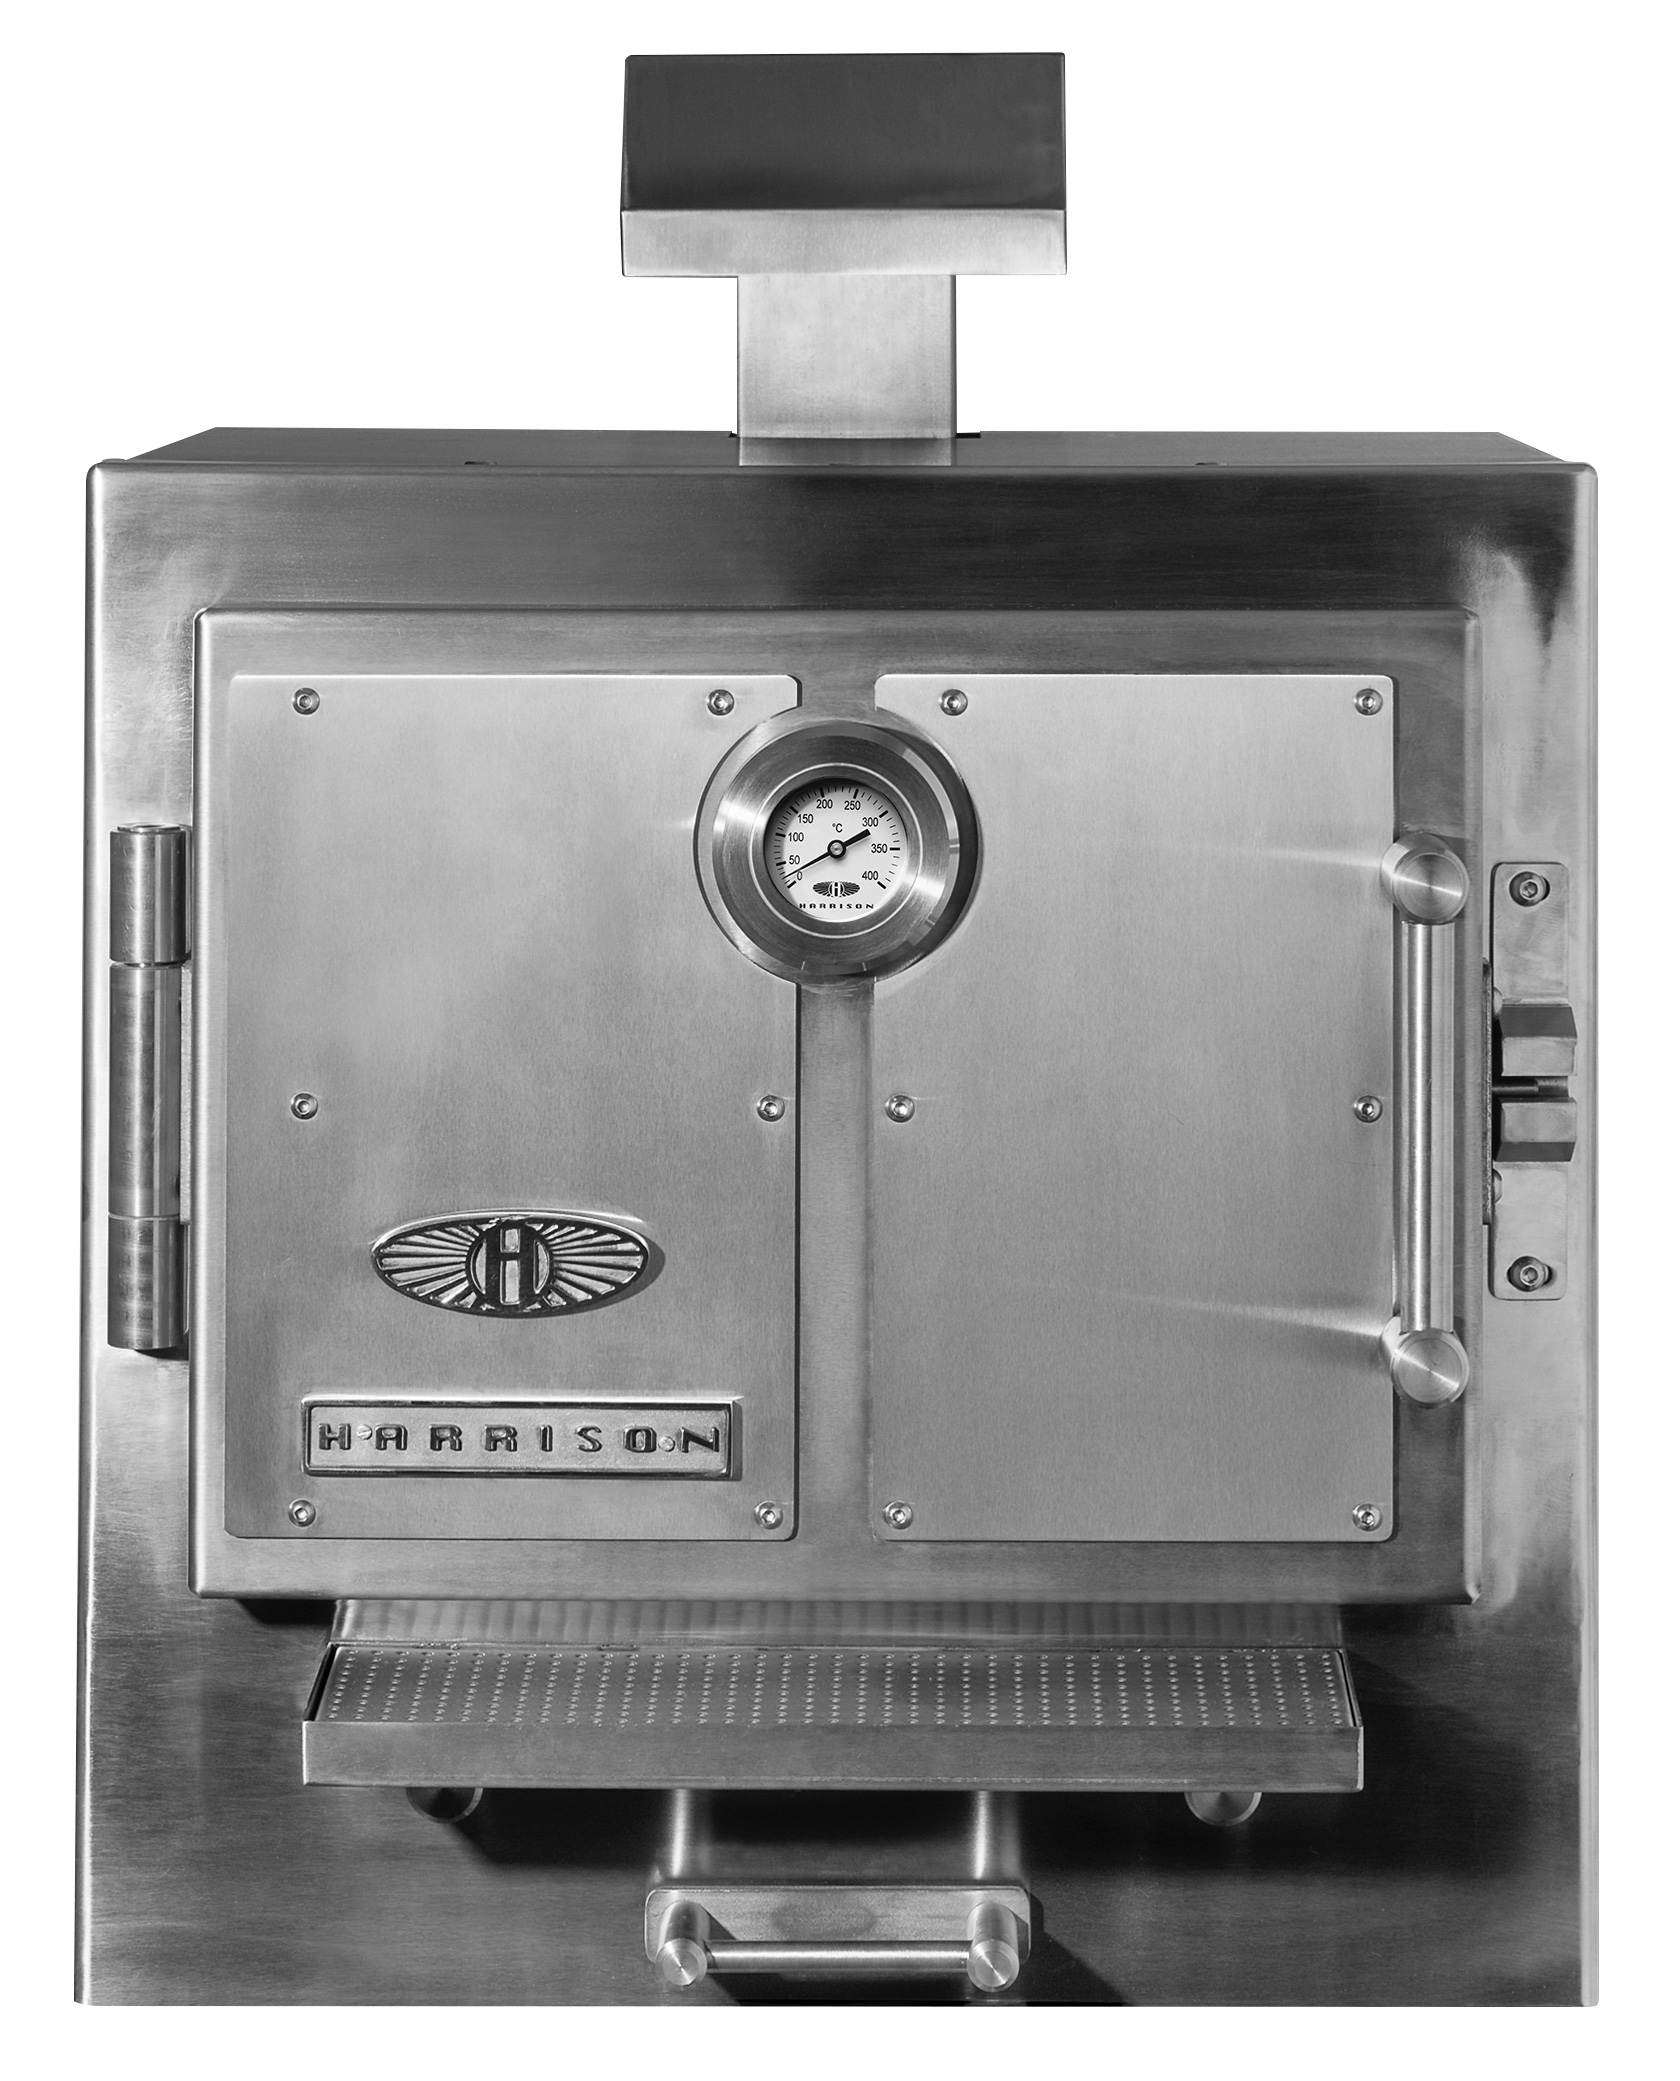 The Harrison 'x' Charcoal Oven unit NSF